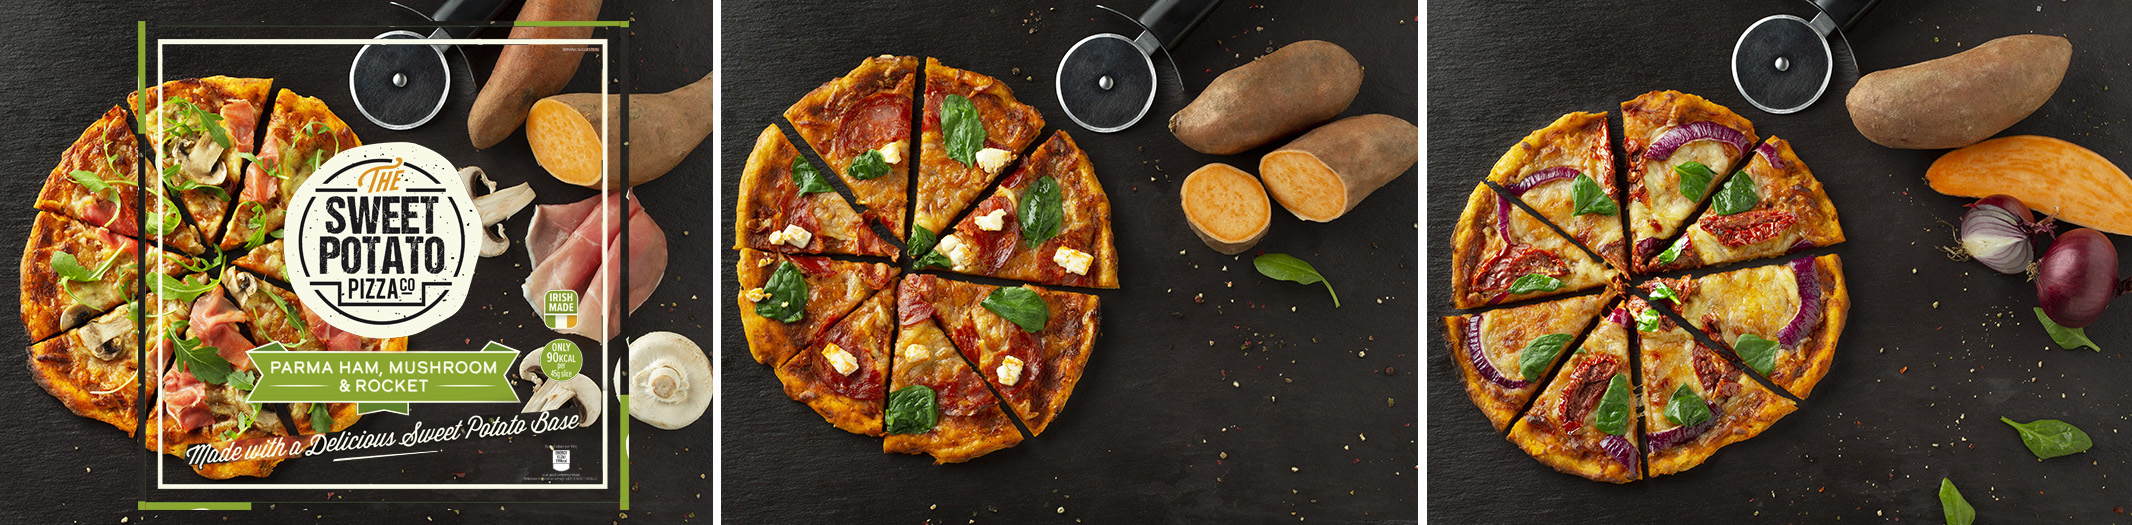 A design template was used to compose and position the pizza, the garnishes and props.